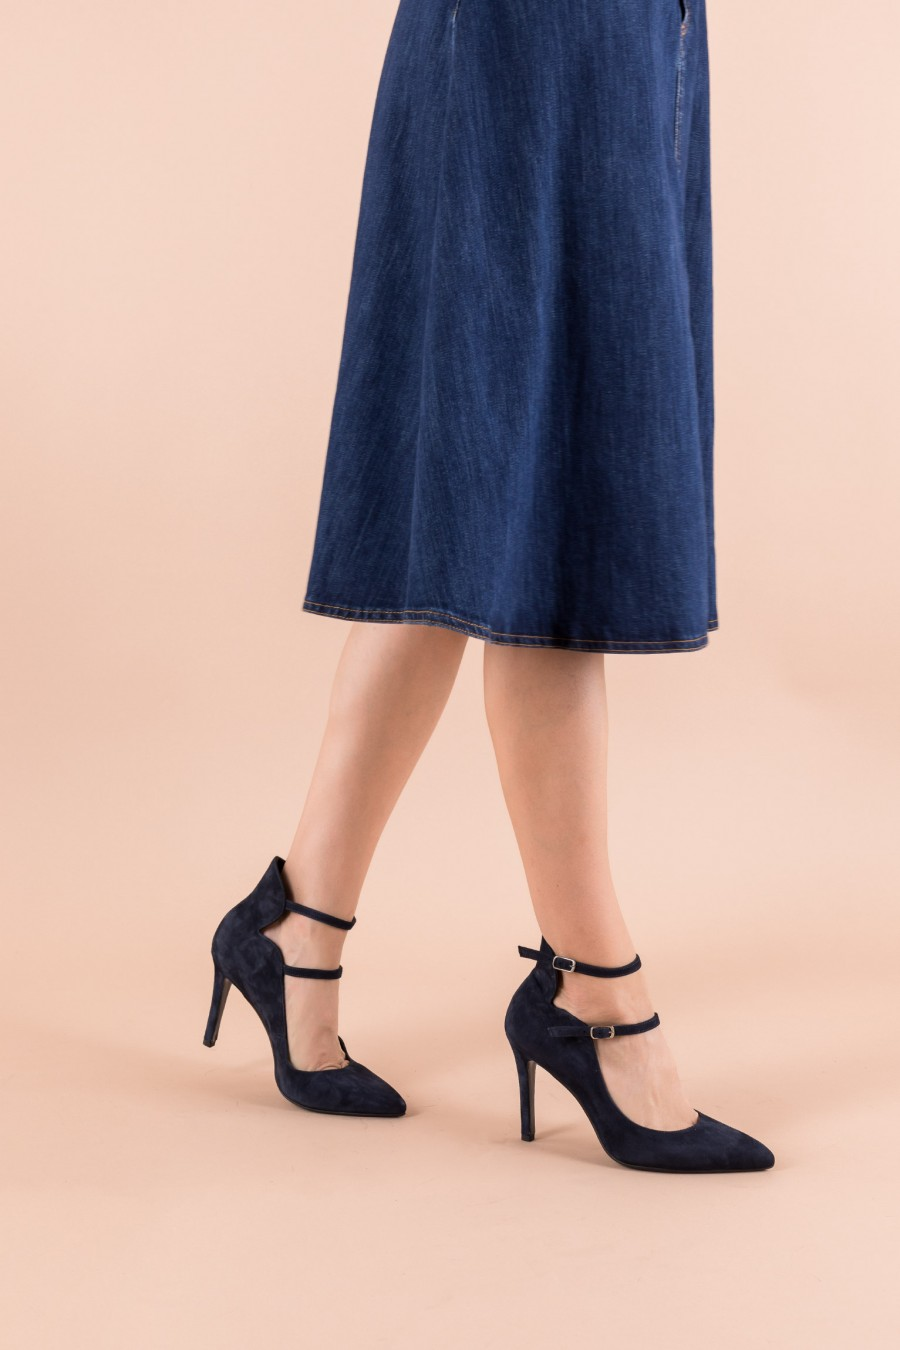 Pumps with double straps